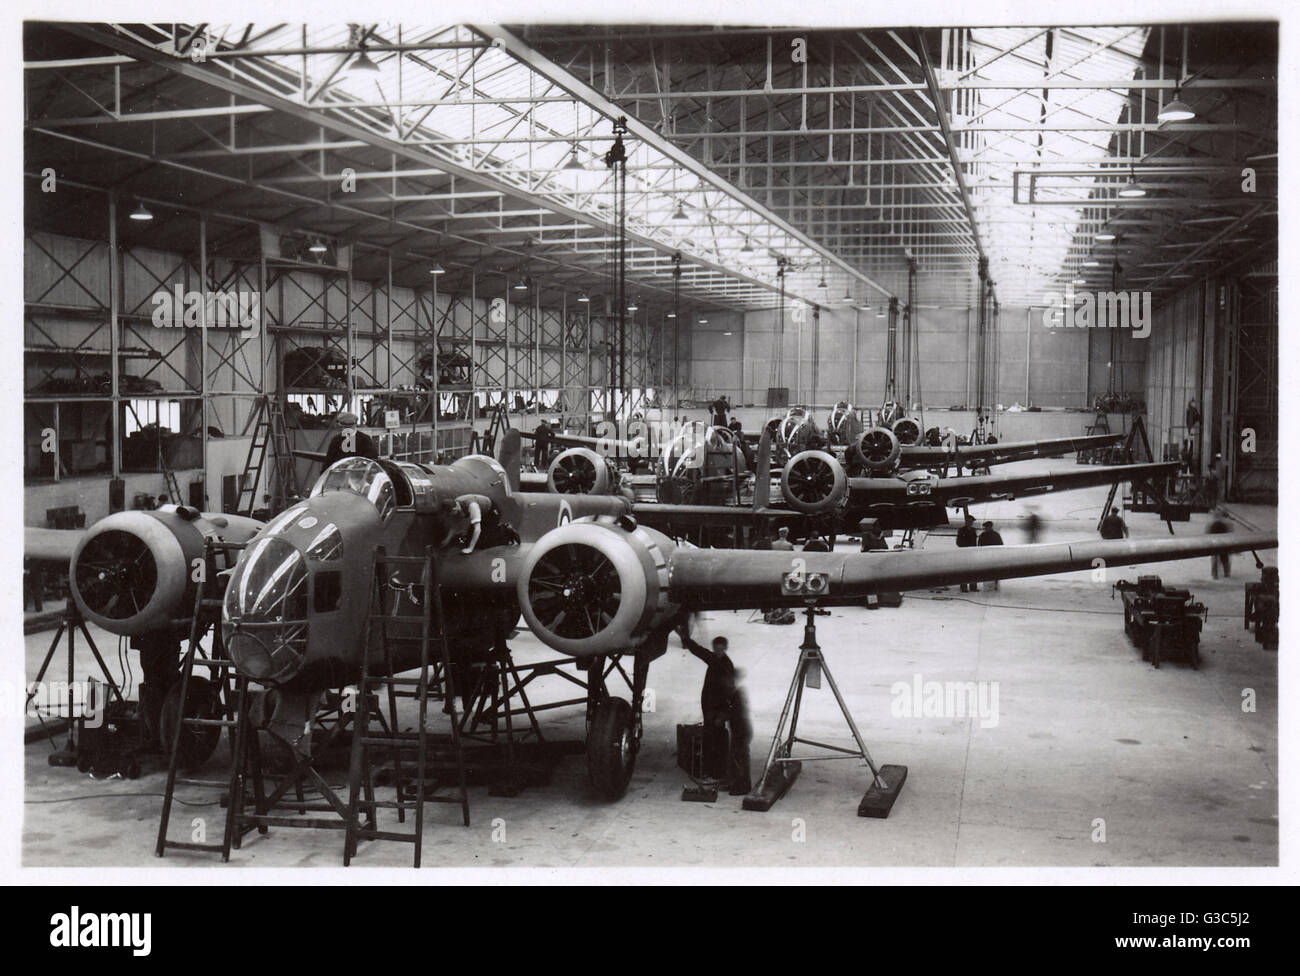 Handley Page Hampden Mk I construction by English Electric at Smalesbury, Lancashire.      Date: circa 1940 - Stock Image